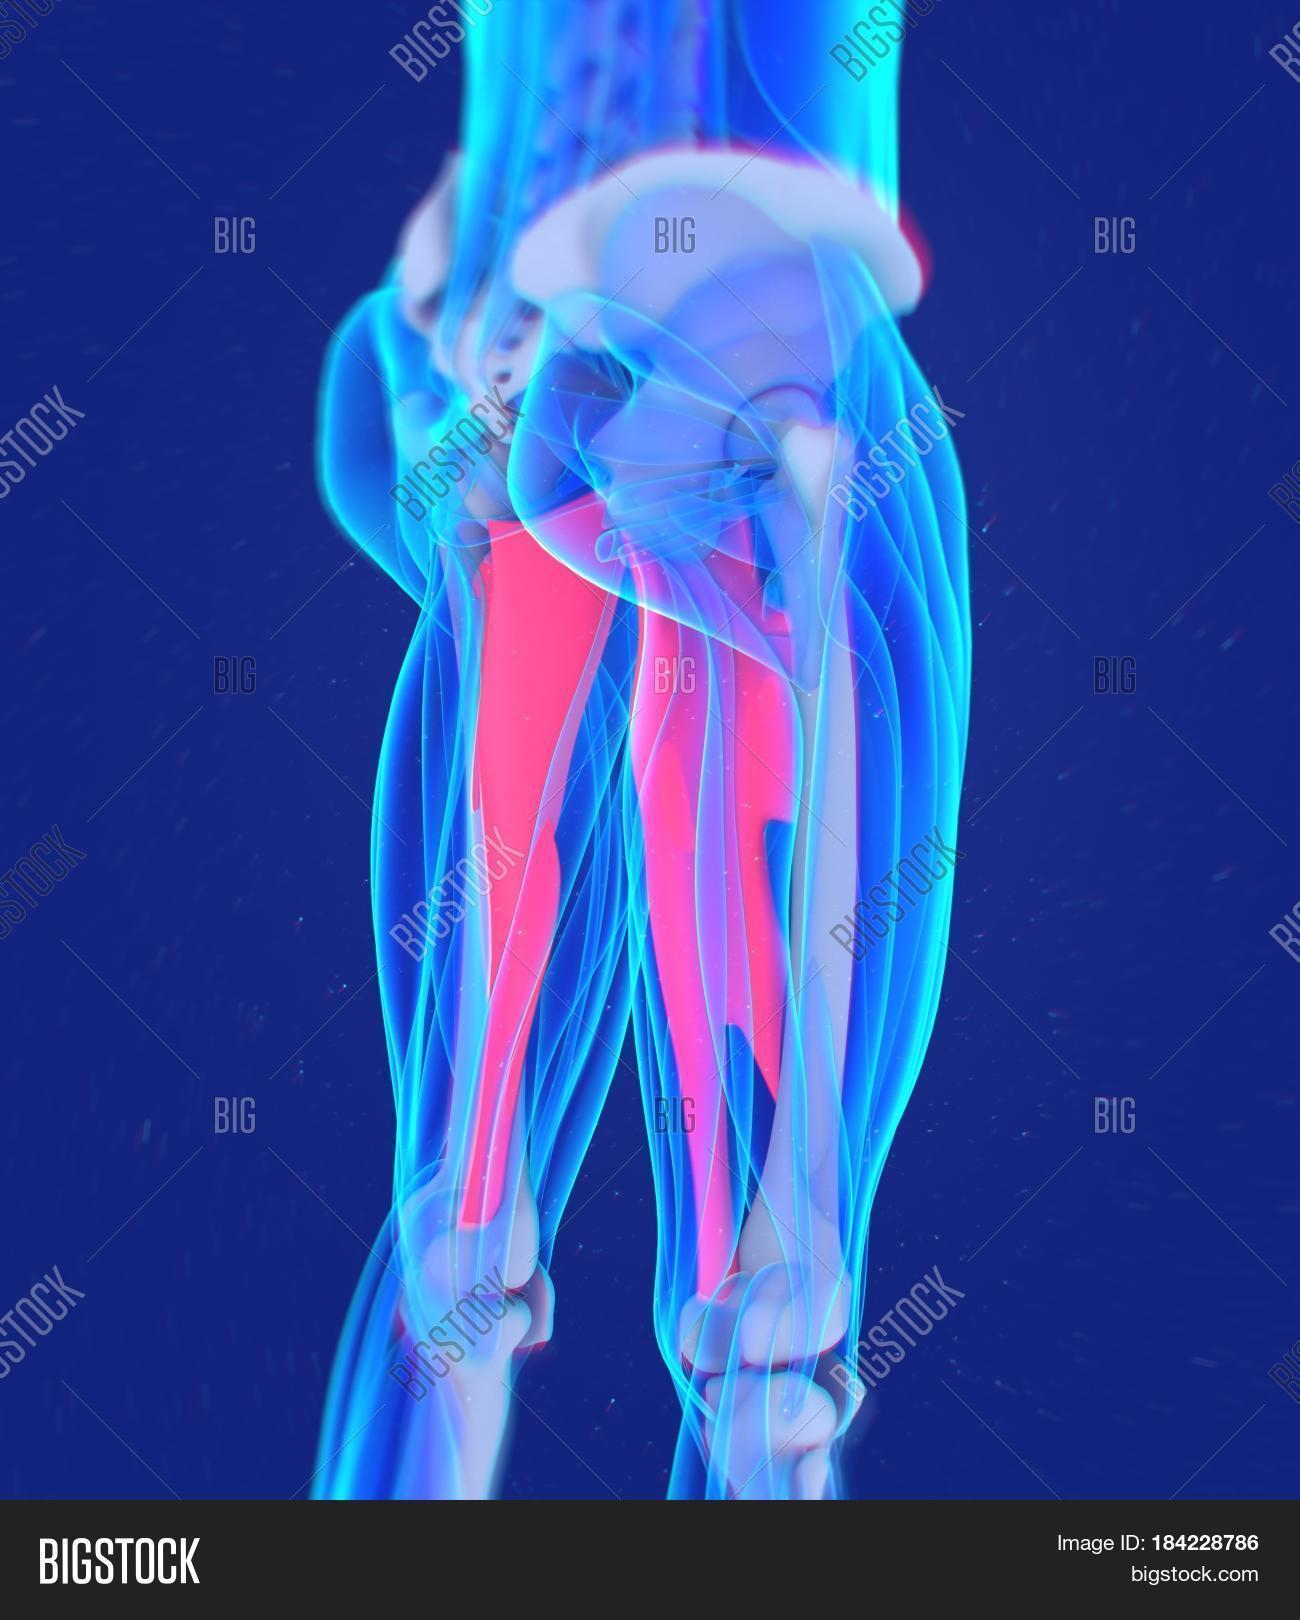 Adductor Magnus. Image & Photo (Free Trial) | Bigstock